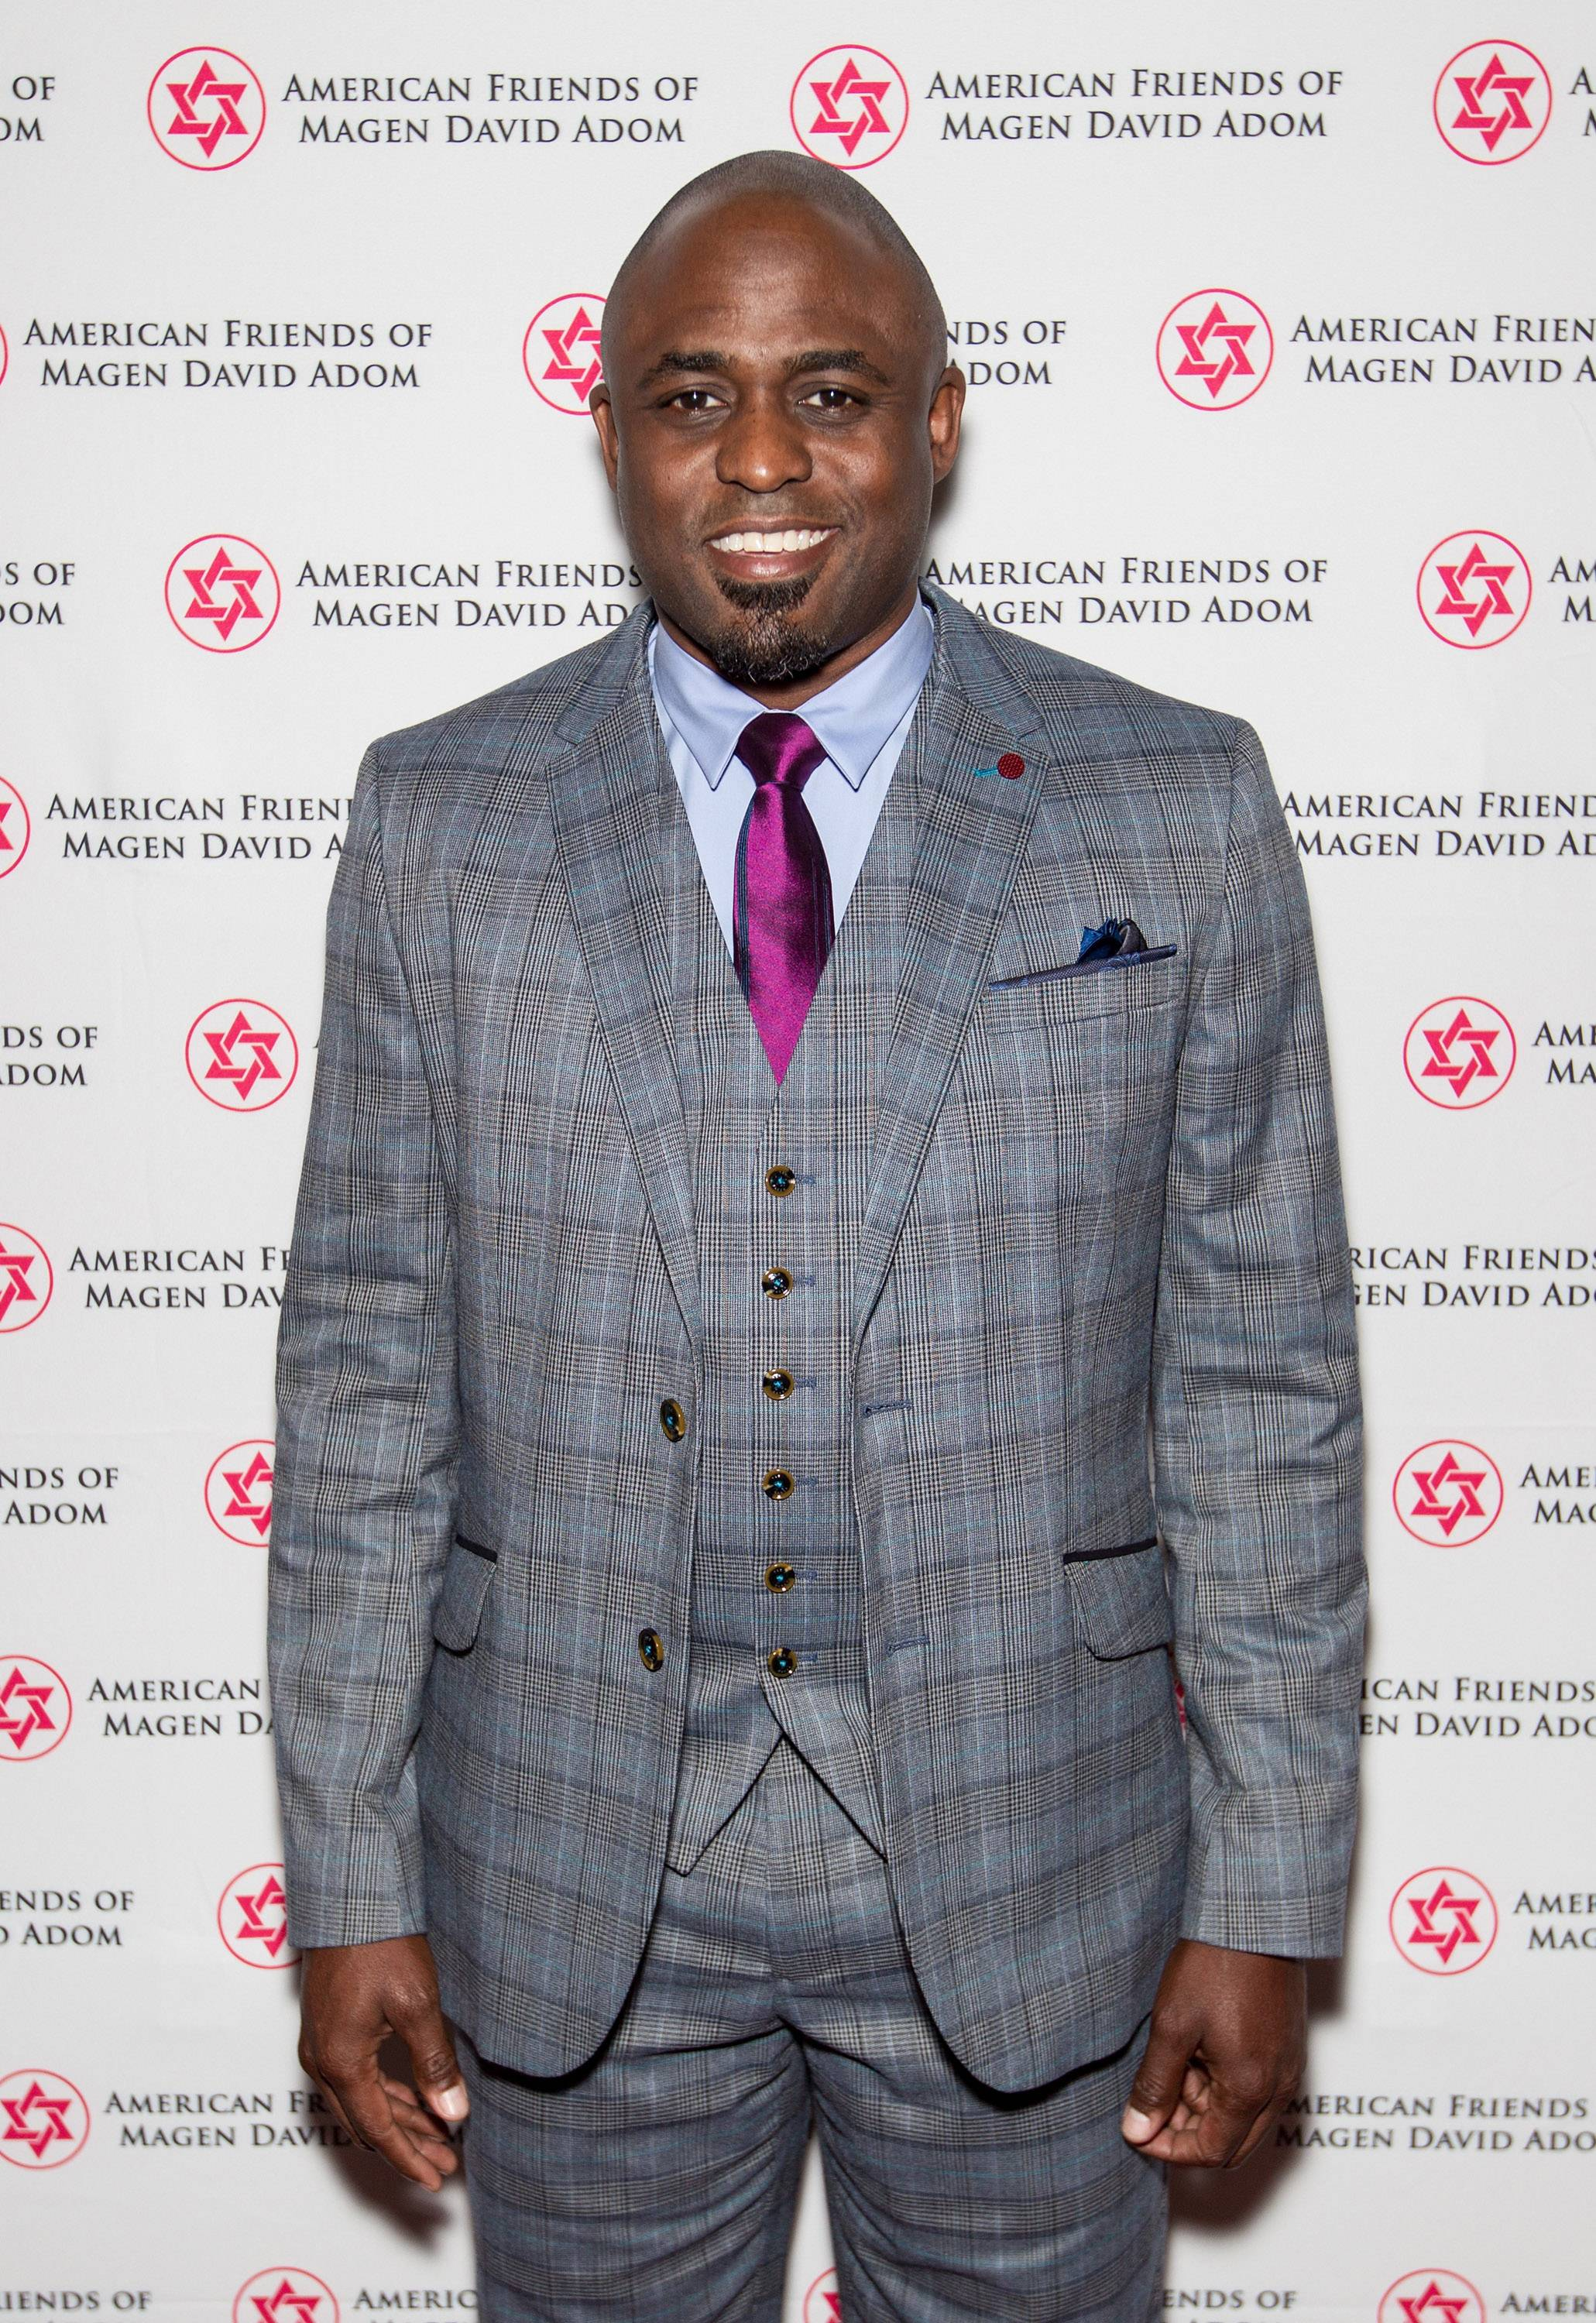 Wayne Brady - A tip for all the fellas: The way to a woman's heart is to make her laugh. Wayne is beyond this planet hilarious.   (Photo: Miikka Skaffari/WireImage)